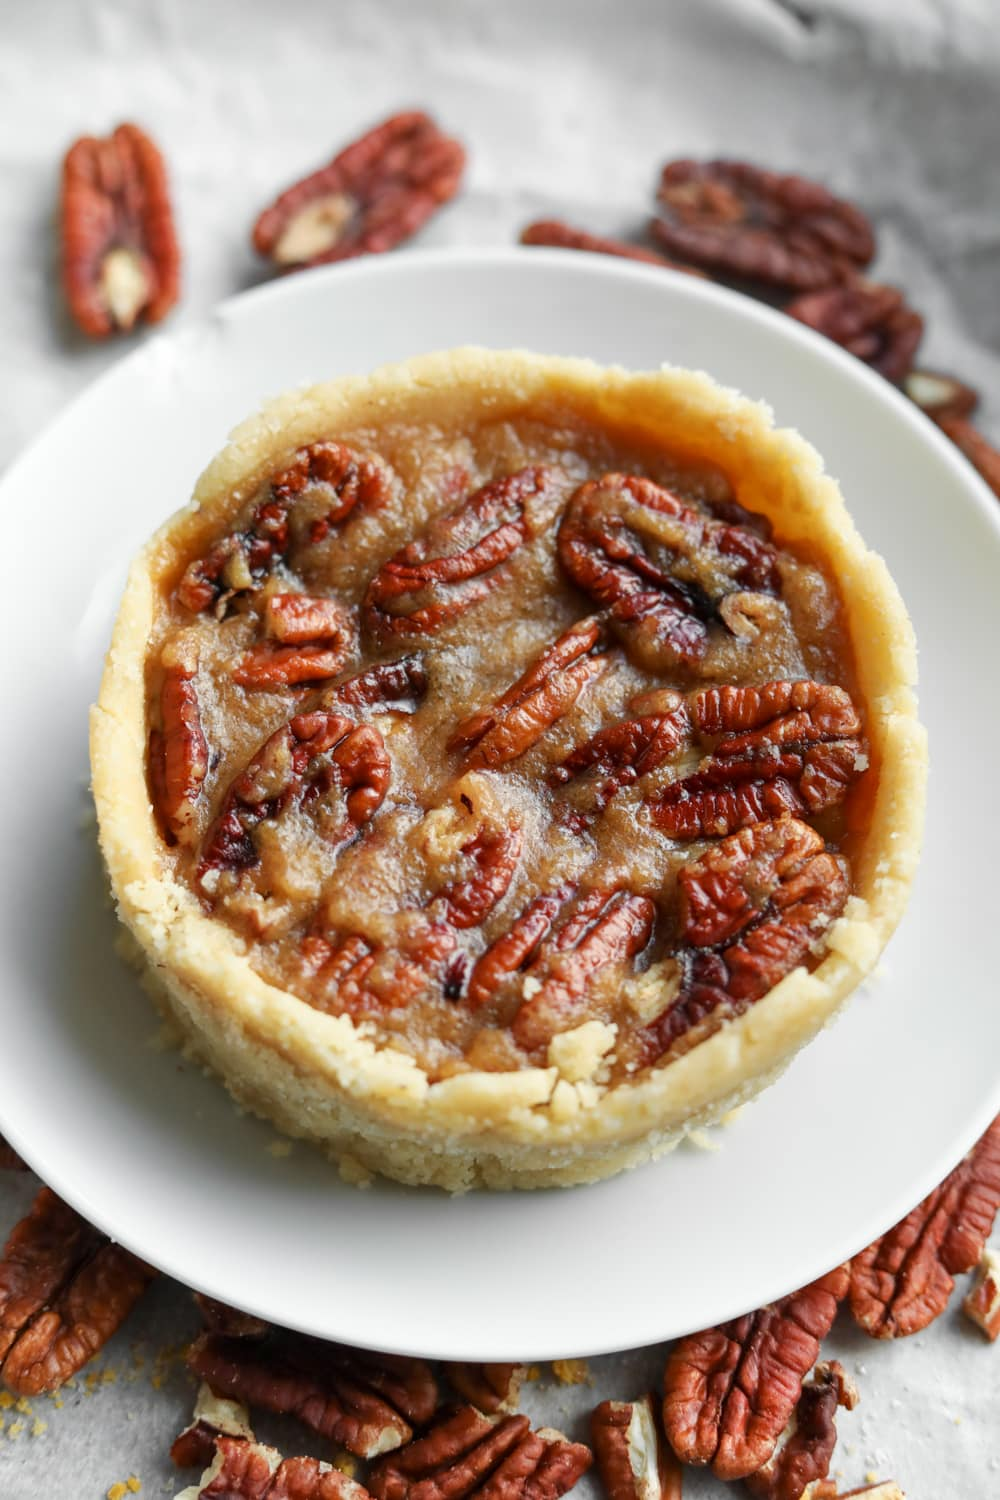 Pecan pie on a white plate with pecans surrounding it.